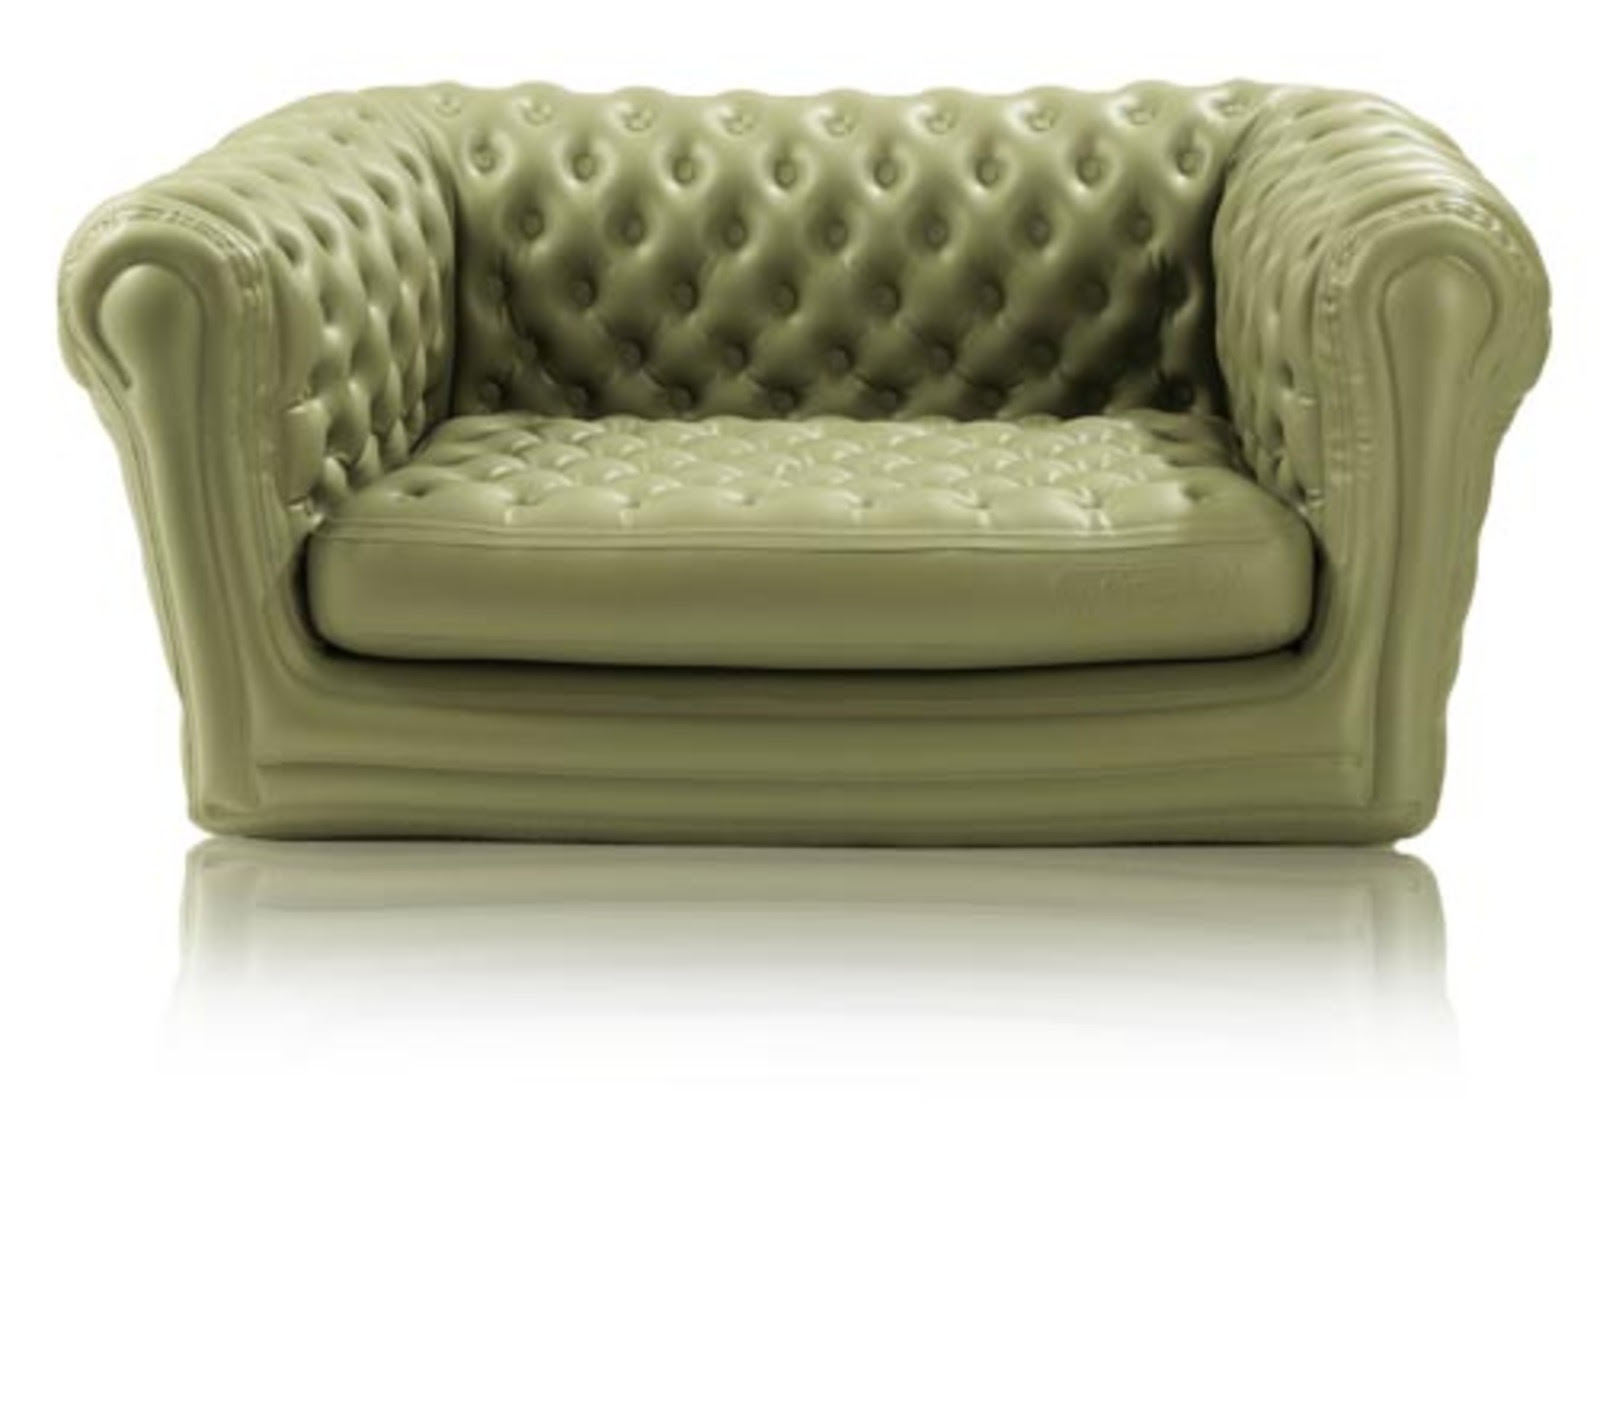 Admirable Inflatable Chesterfield Sofa Home Sofa Ocoug Best Dining Table And Chair Ideas Images Ocougorg